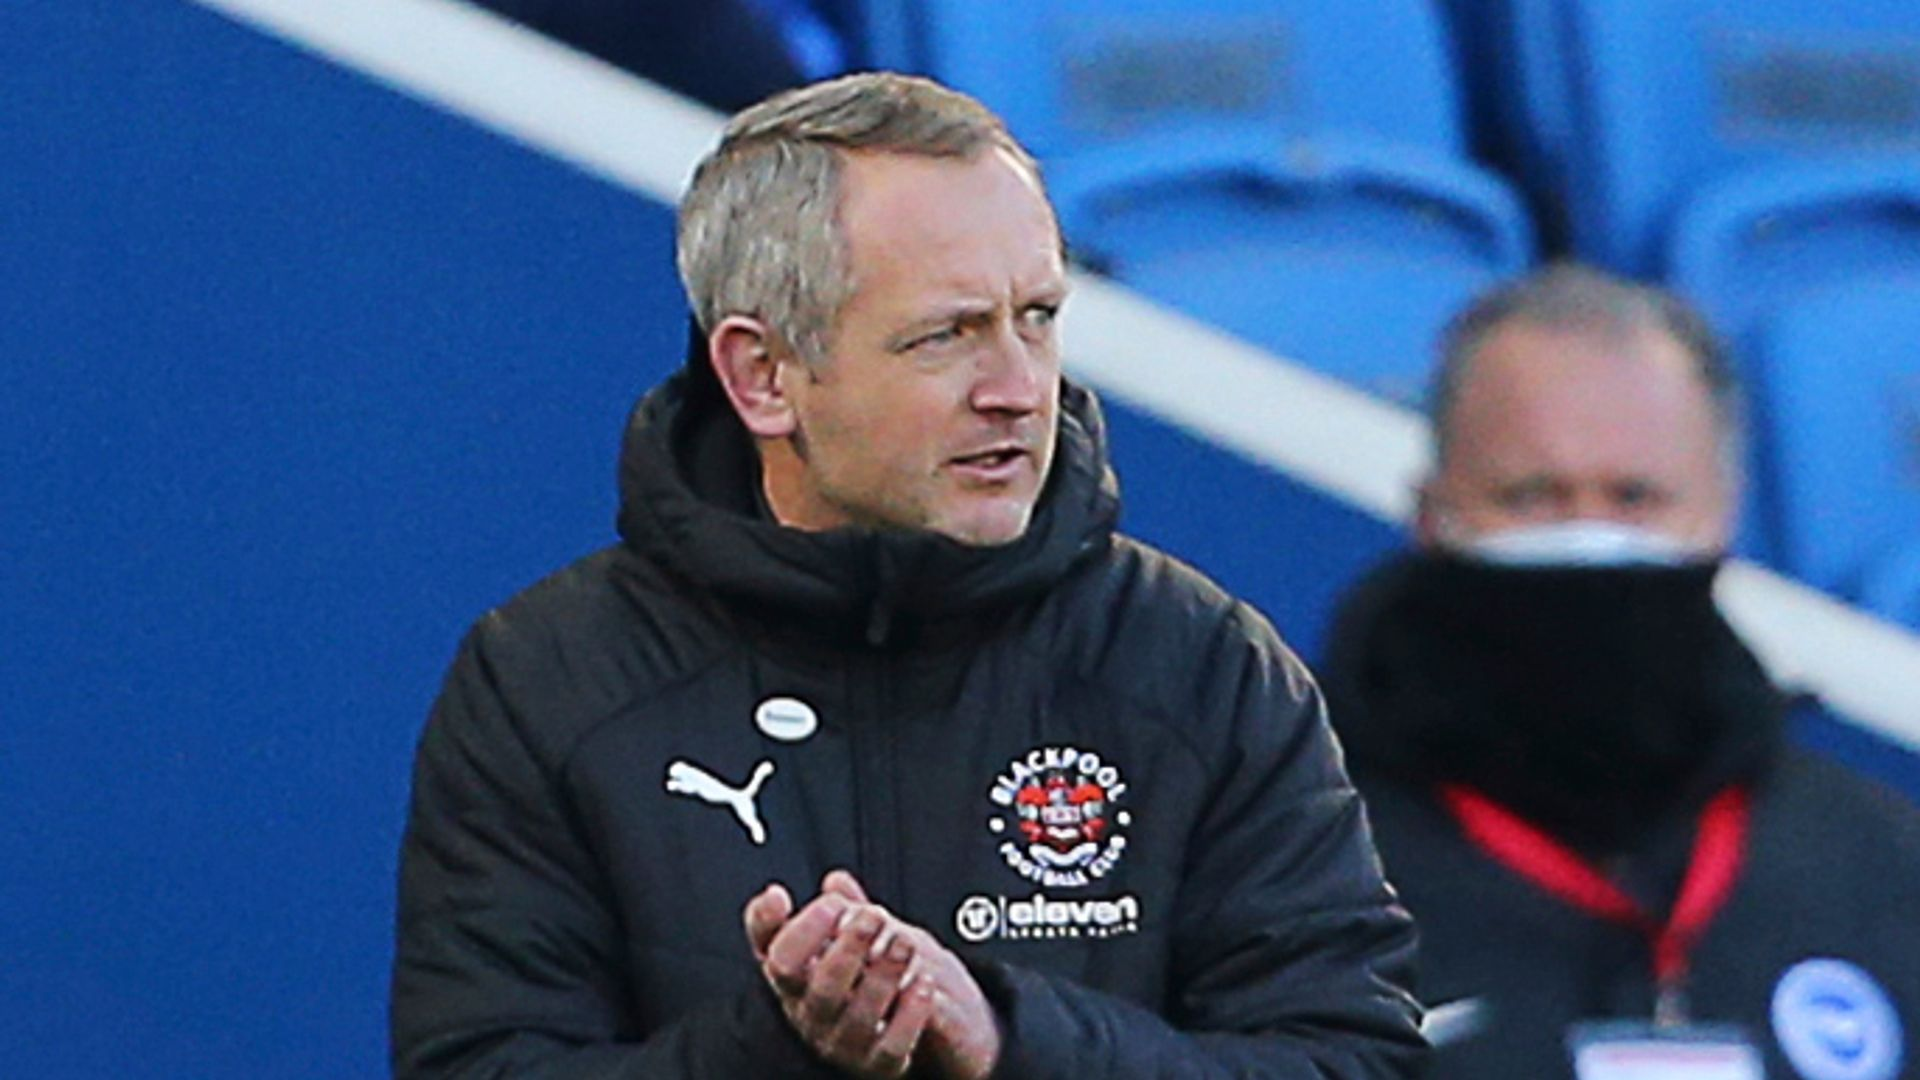 Blackpool boss Critchley: Let's make our good season great